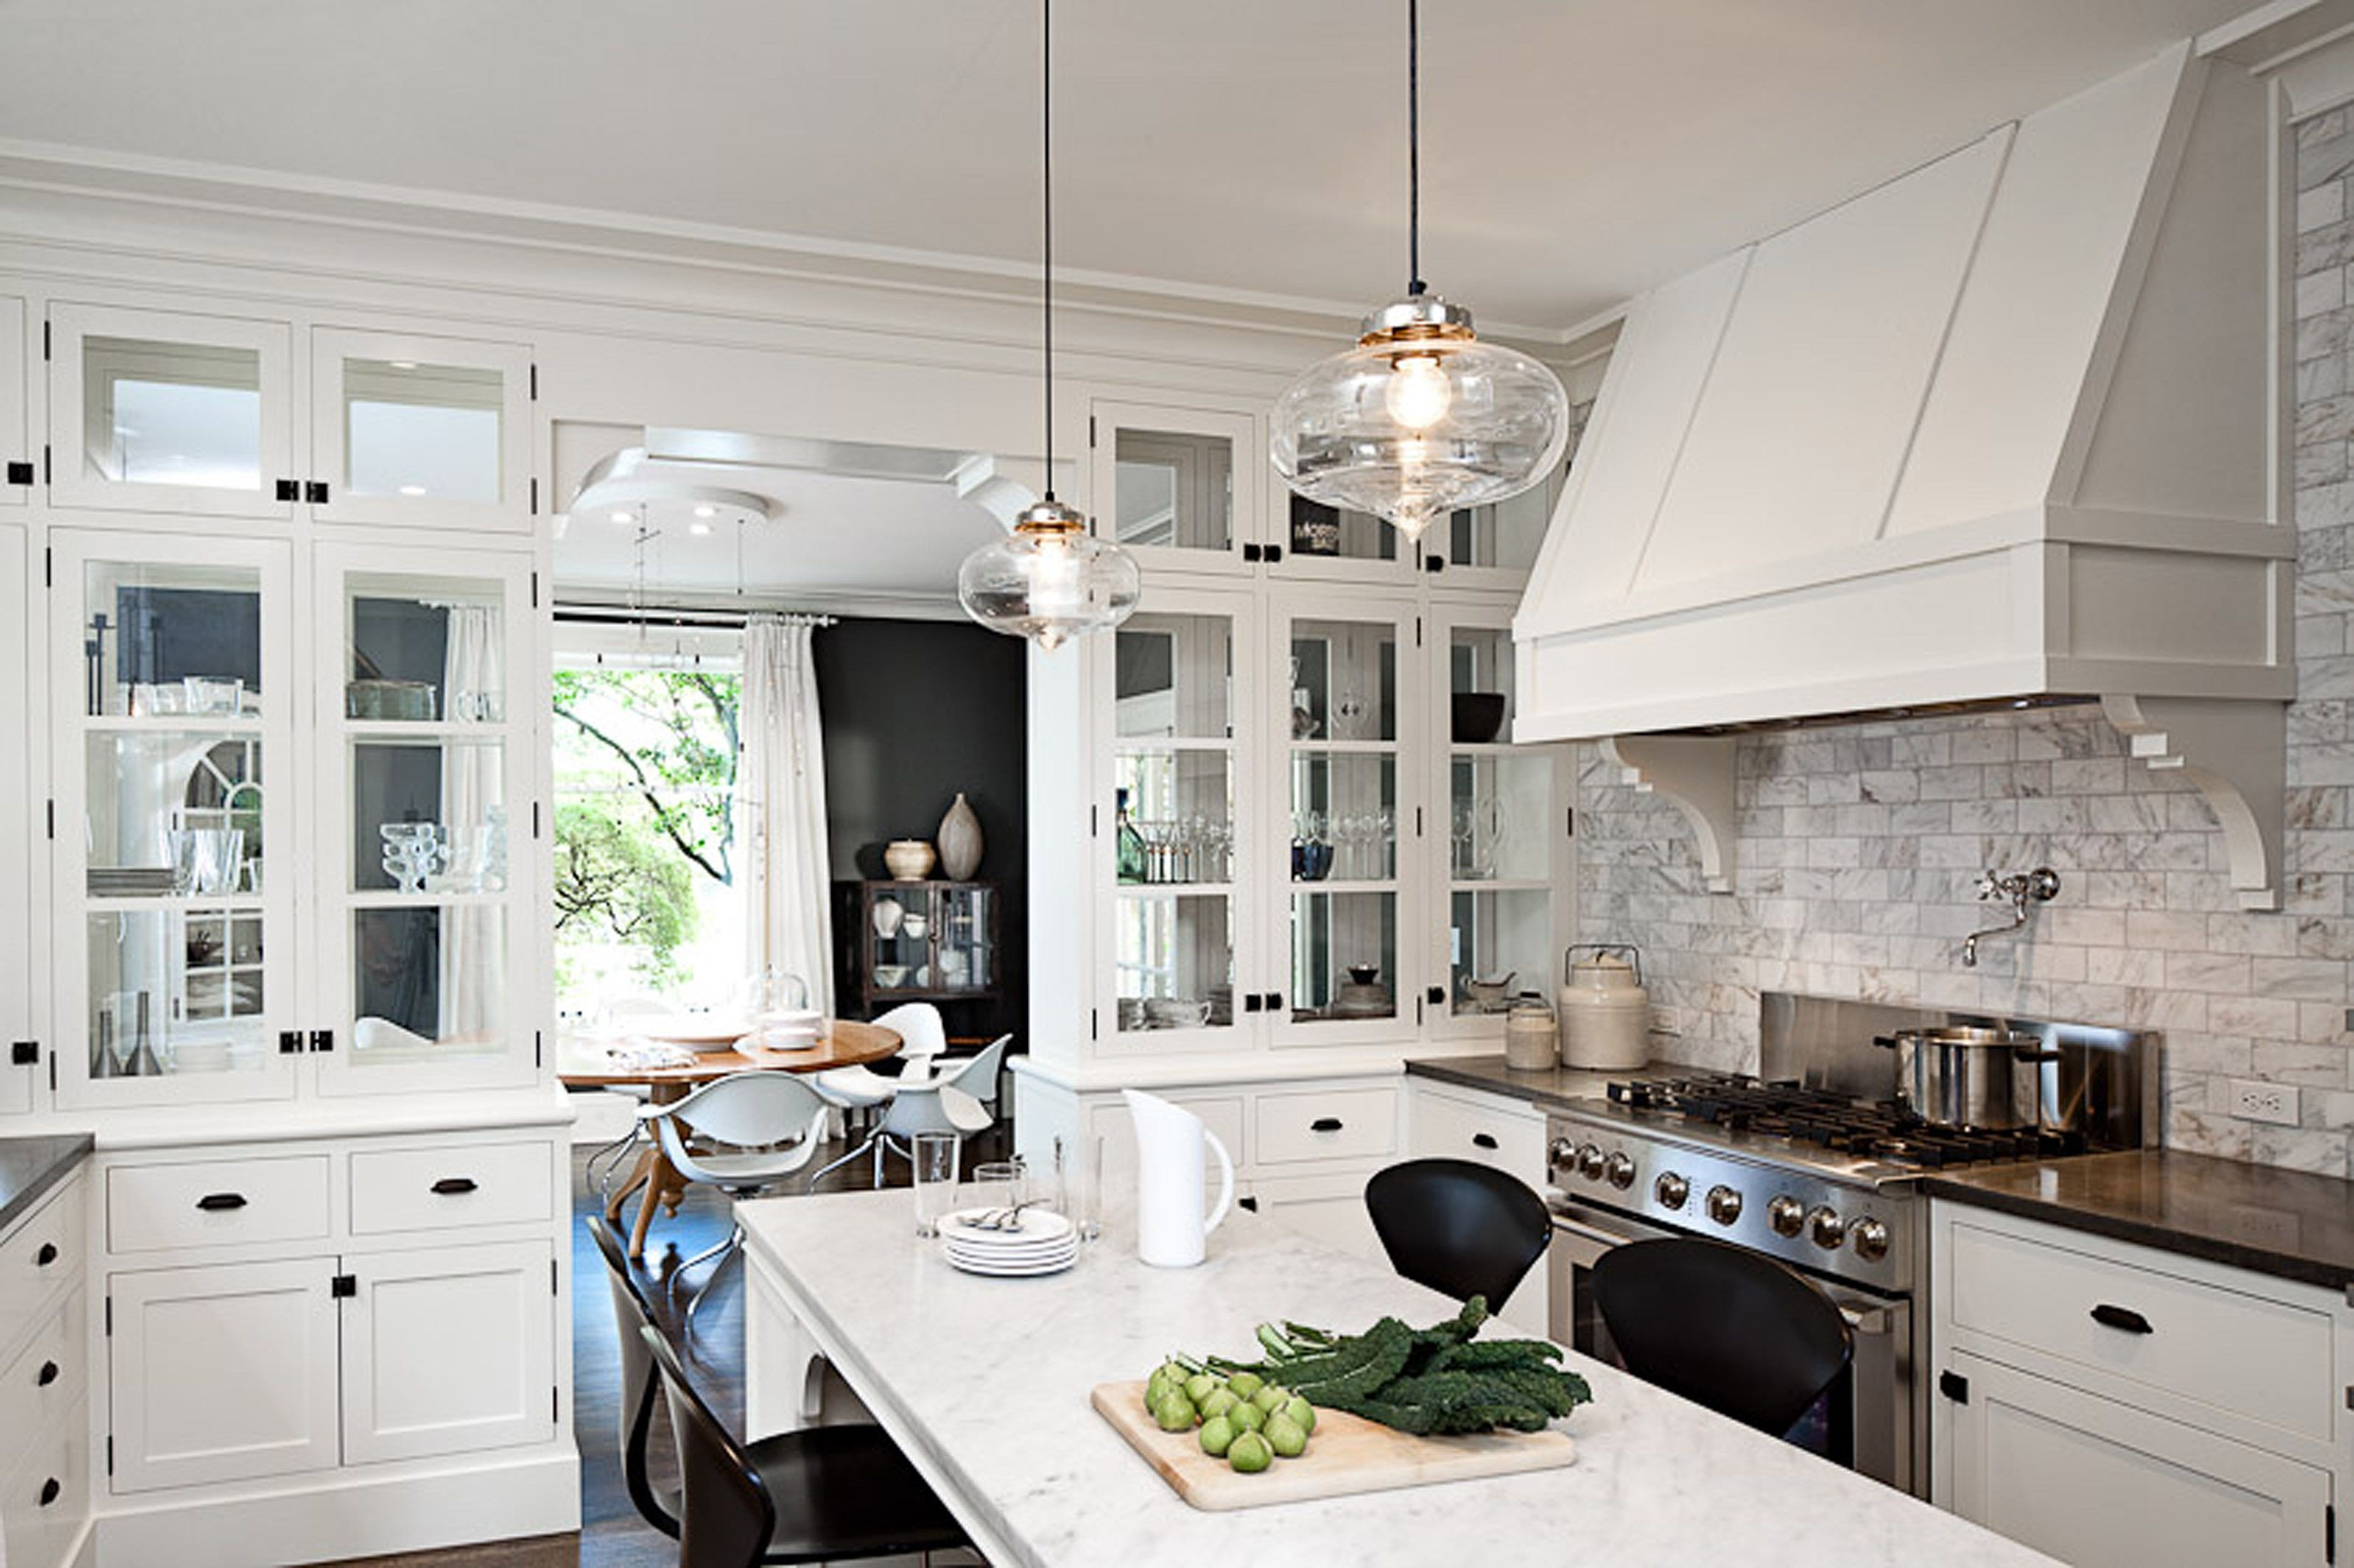 6 Rules to a clutter-free kitchen